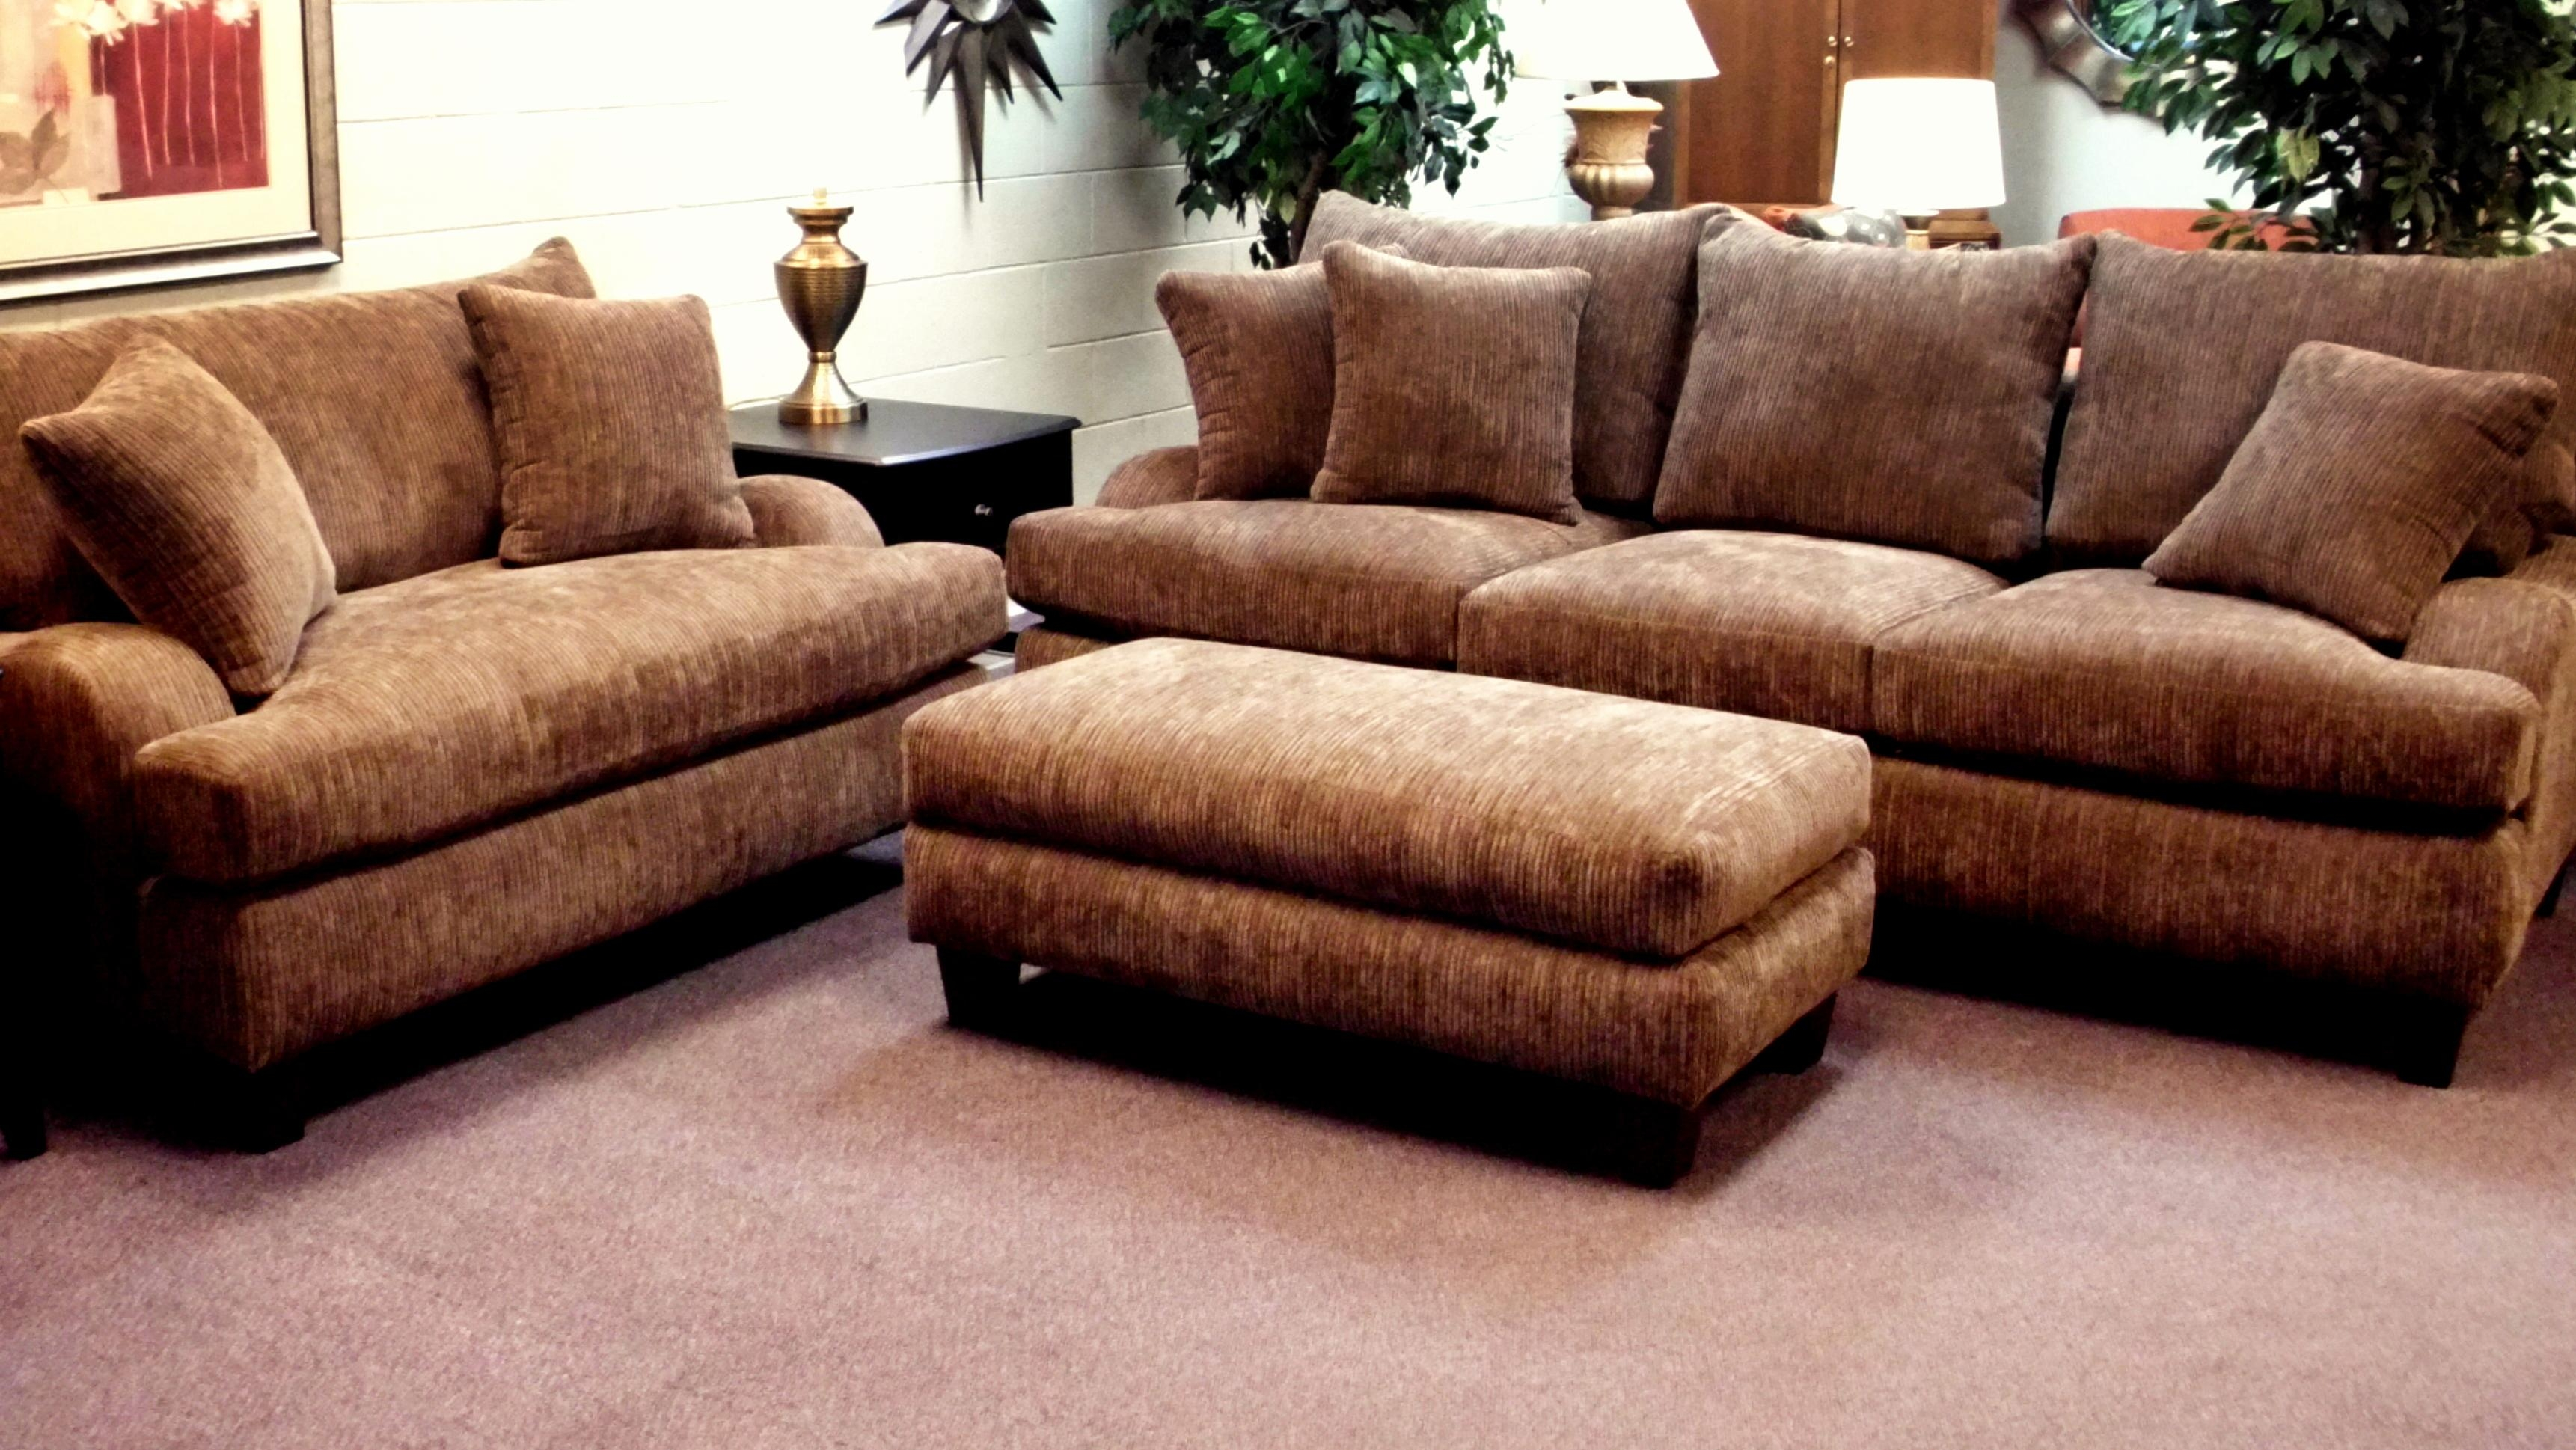 Furniture: Oversized Couch | Movie Room Couches | Extra Deep Couches For Love Sac Sofas (Image 6 of 20)